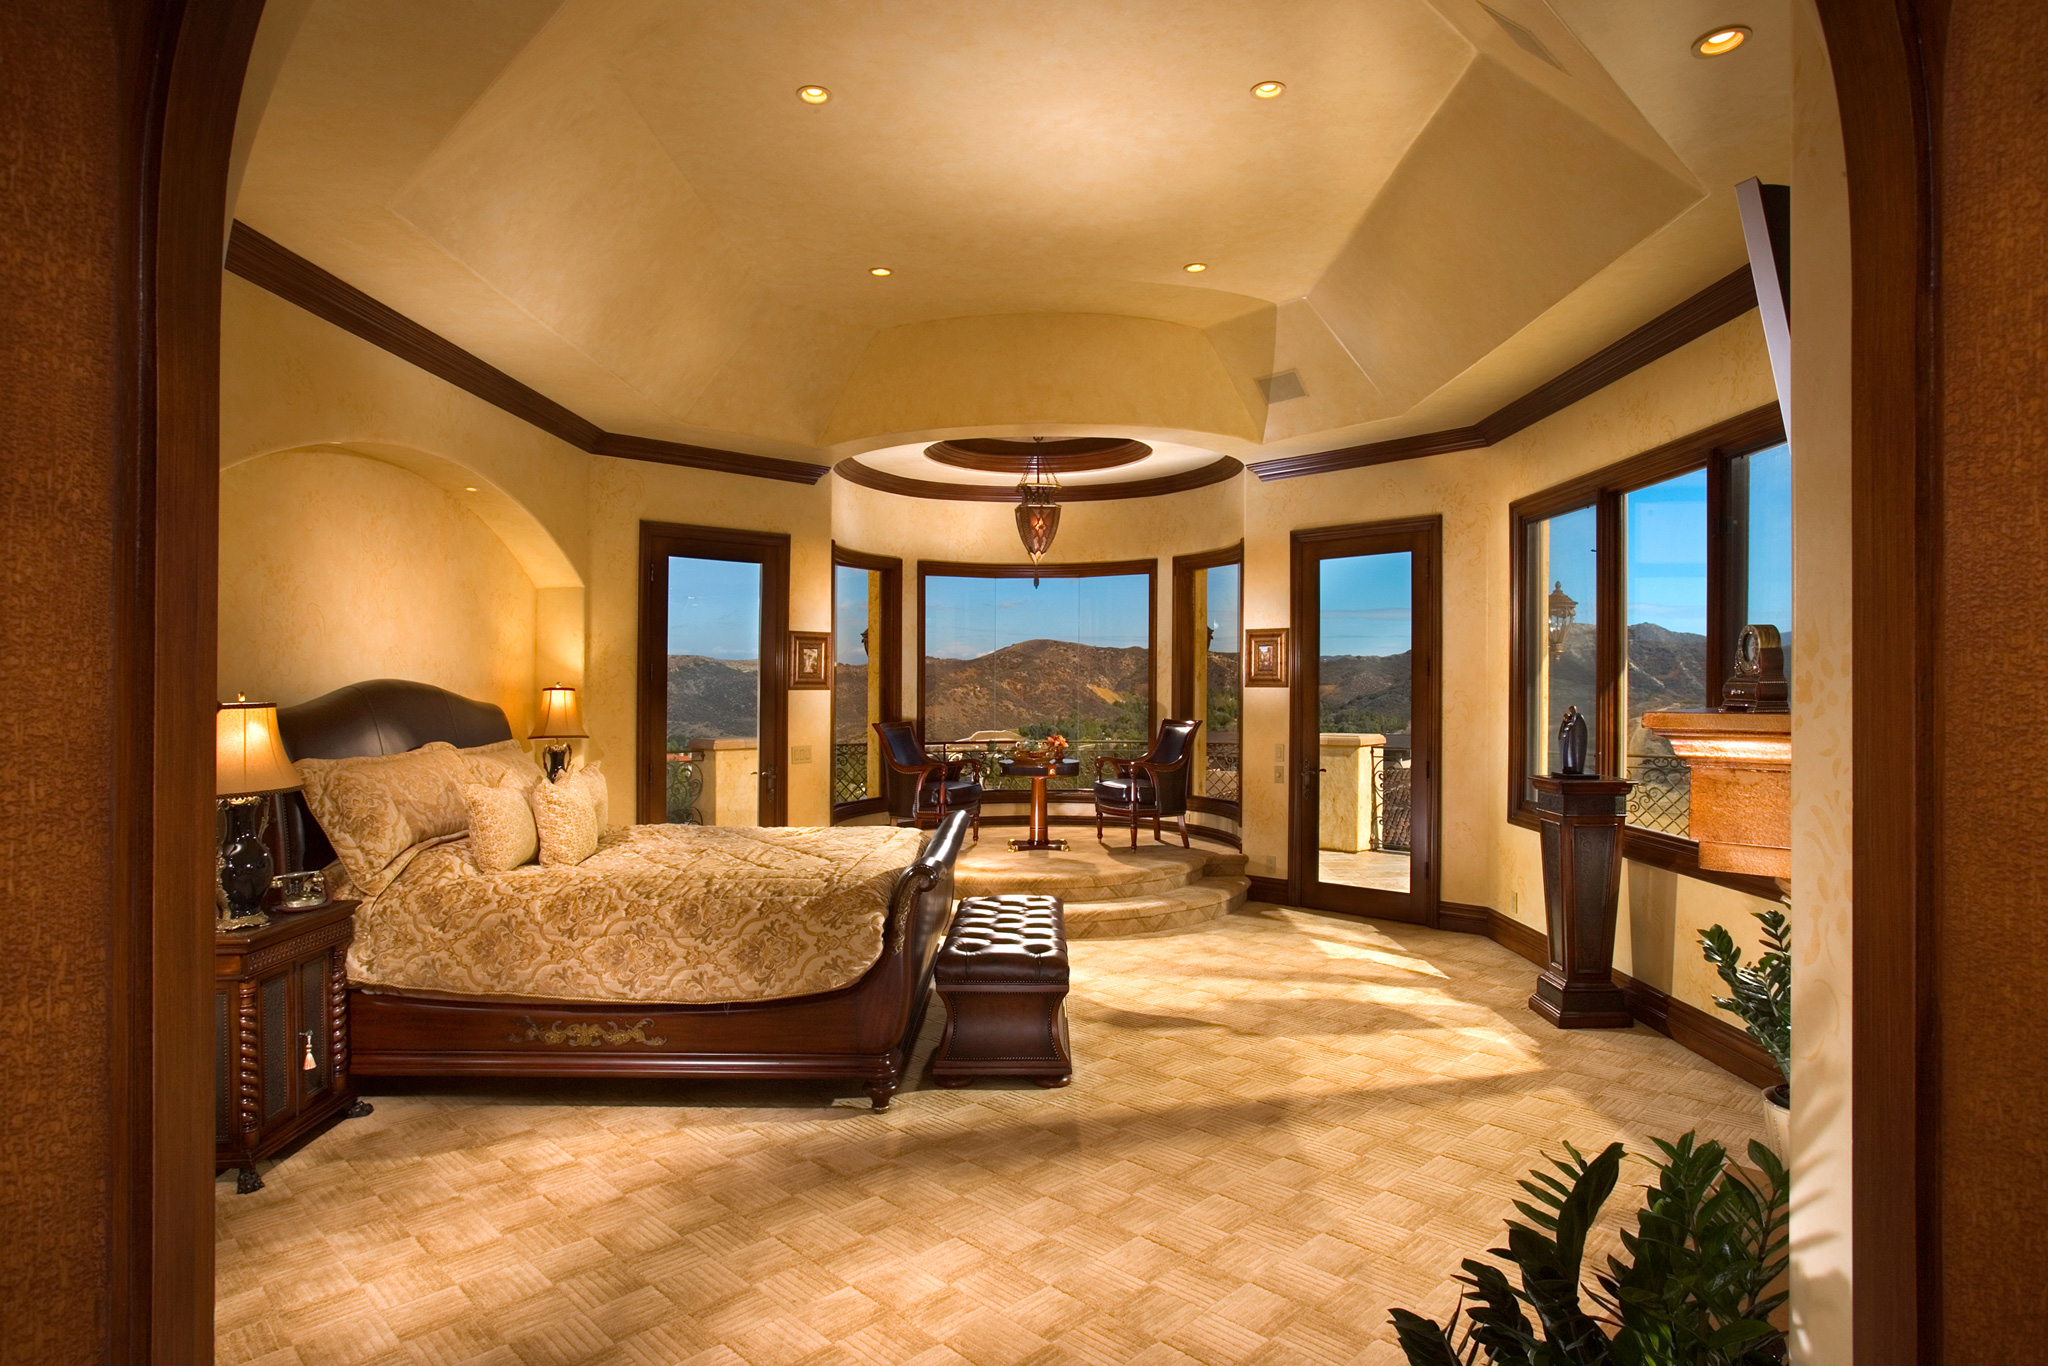 Master bedroom the interior designs for Nice home interior